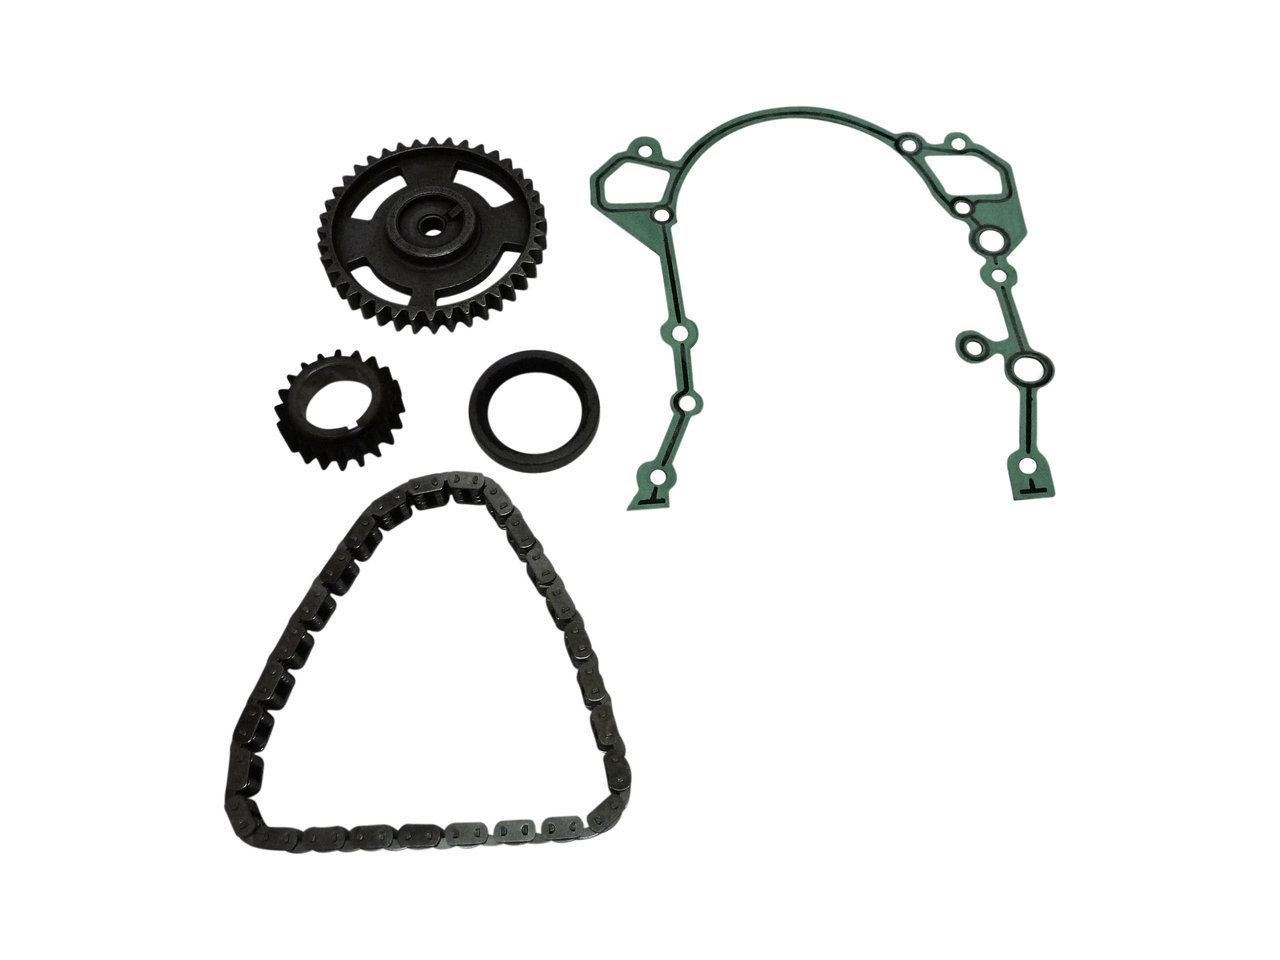 Timing Chain Kit For Range Rover P38 V8 Petrol To